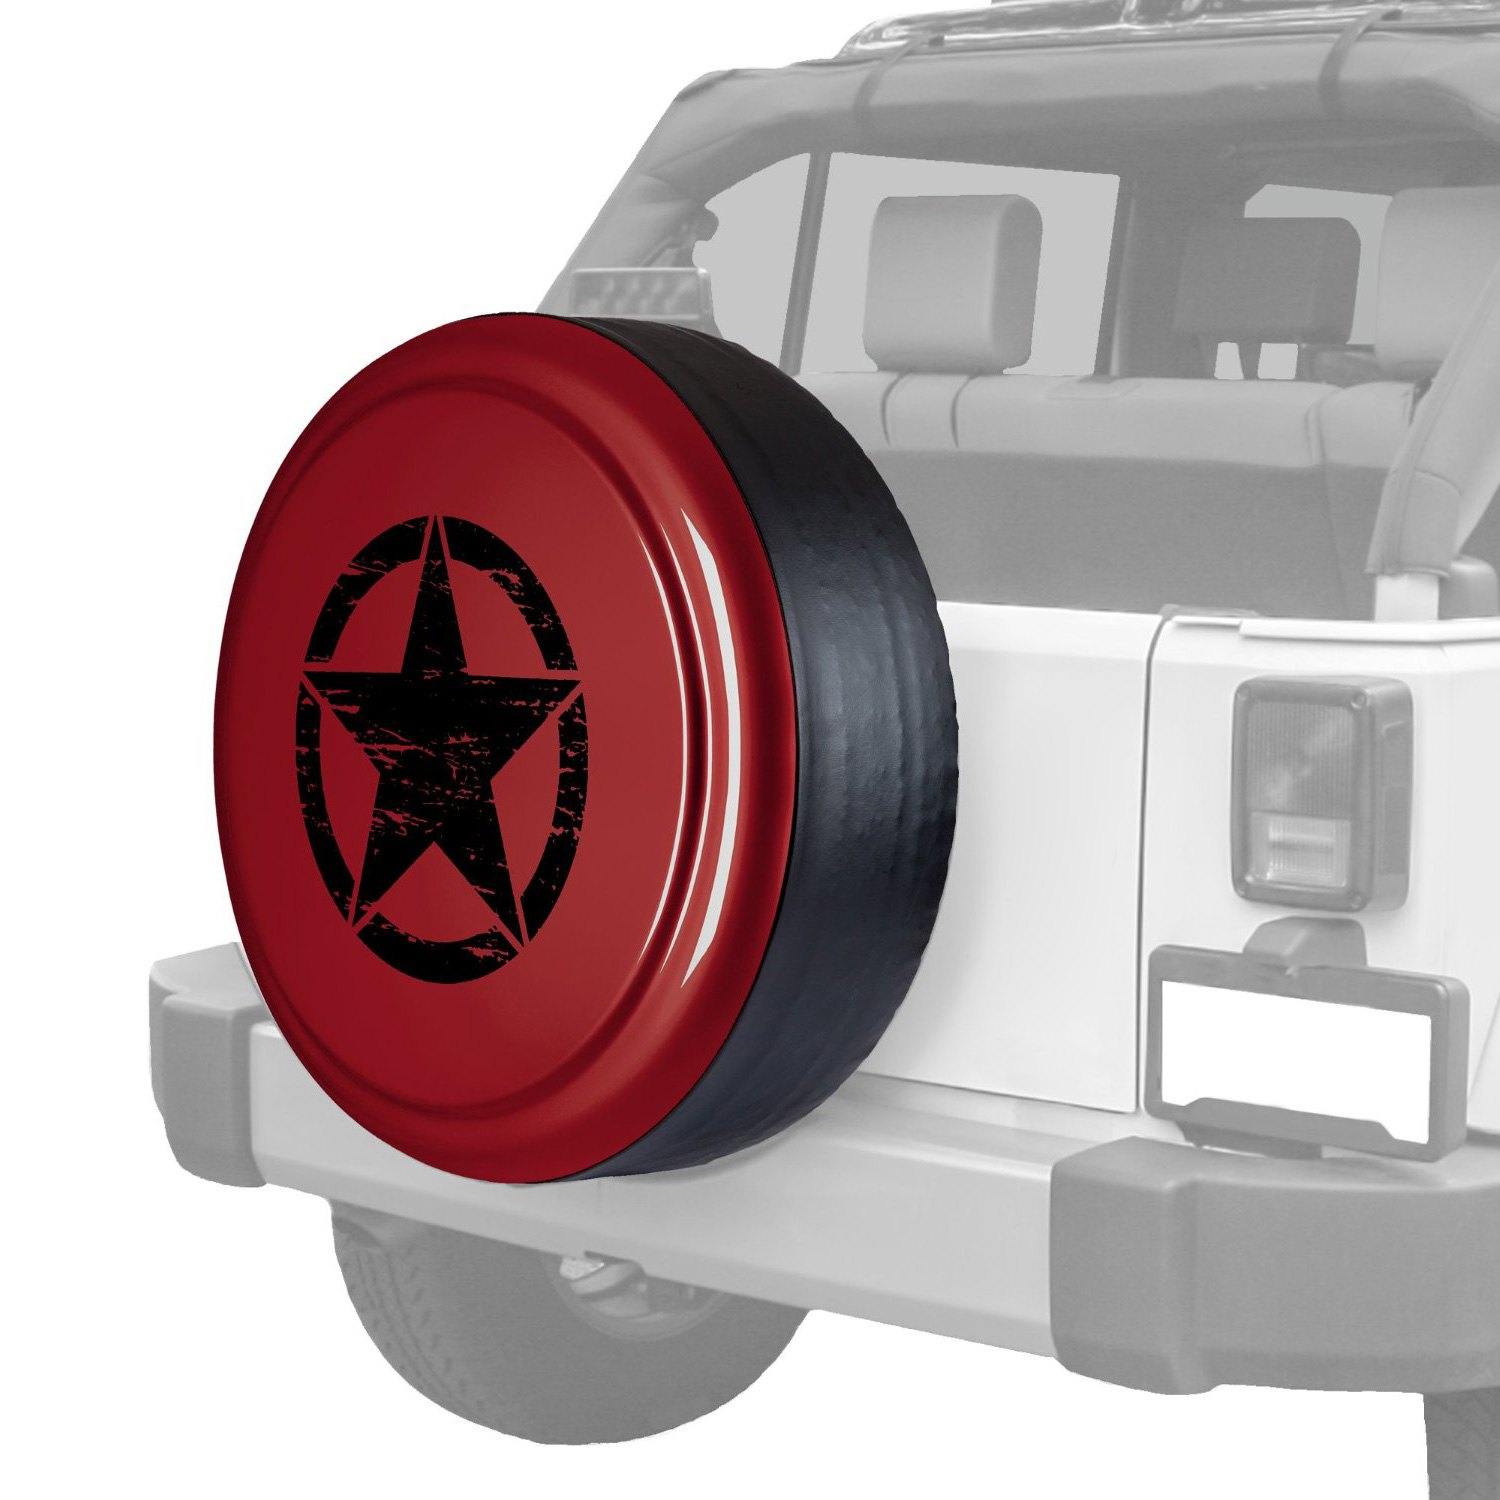 Index likewise Rigid Series Dozer Tire Cover W O Oscar Mike Logo 30 Mpn Rg Jk30 Doz also New Jeep Wrangler Spare Tire Cover 17quot Oscar Mike Logo Black Jeep Logo Mopar as well 2015 Jeep Wrangler Dragon besides Jewrsptico. on oscar mike spare tire cover